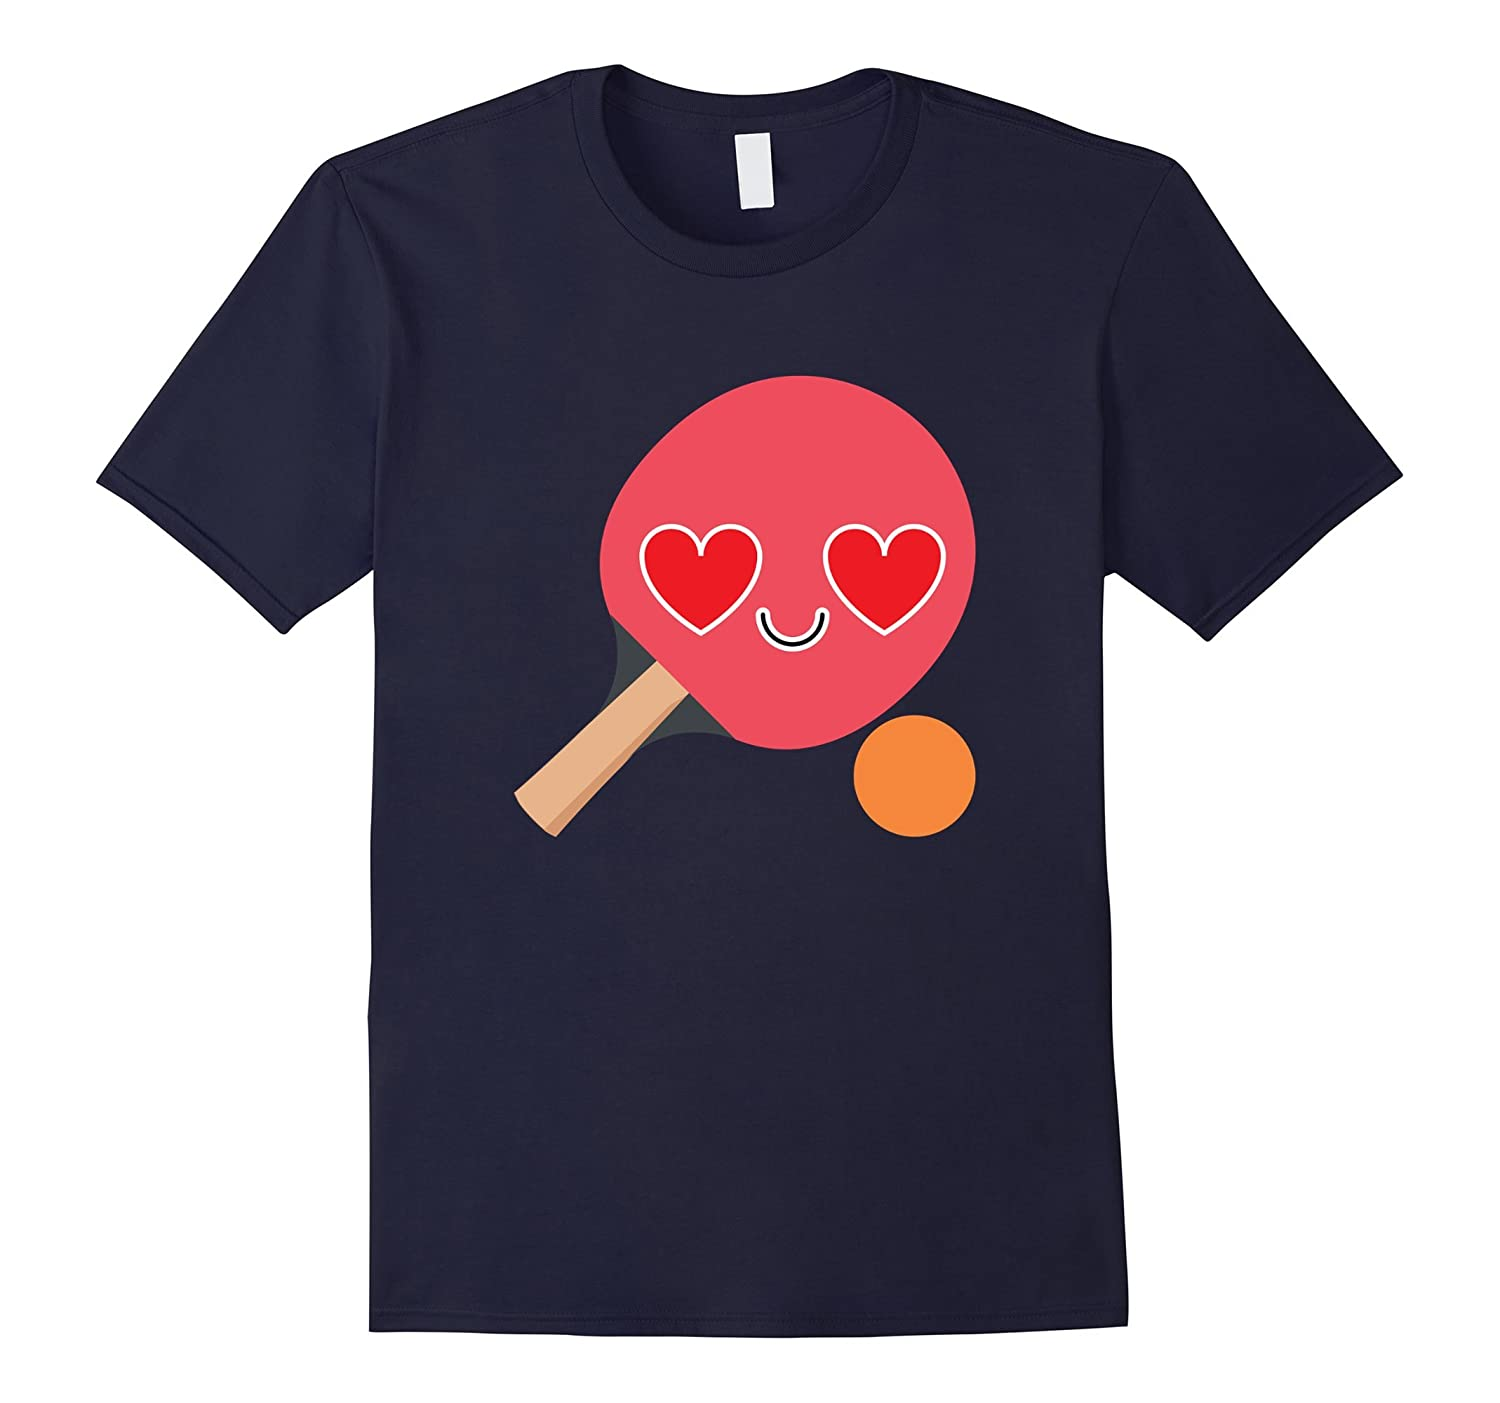 Table Tennis Emoji Heart Eye Shirt Ping Pong T-Shirt Tee-CD